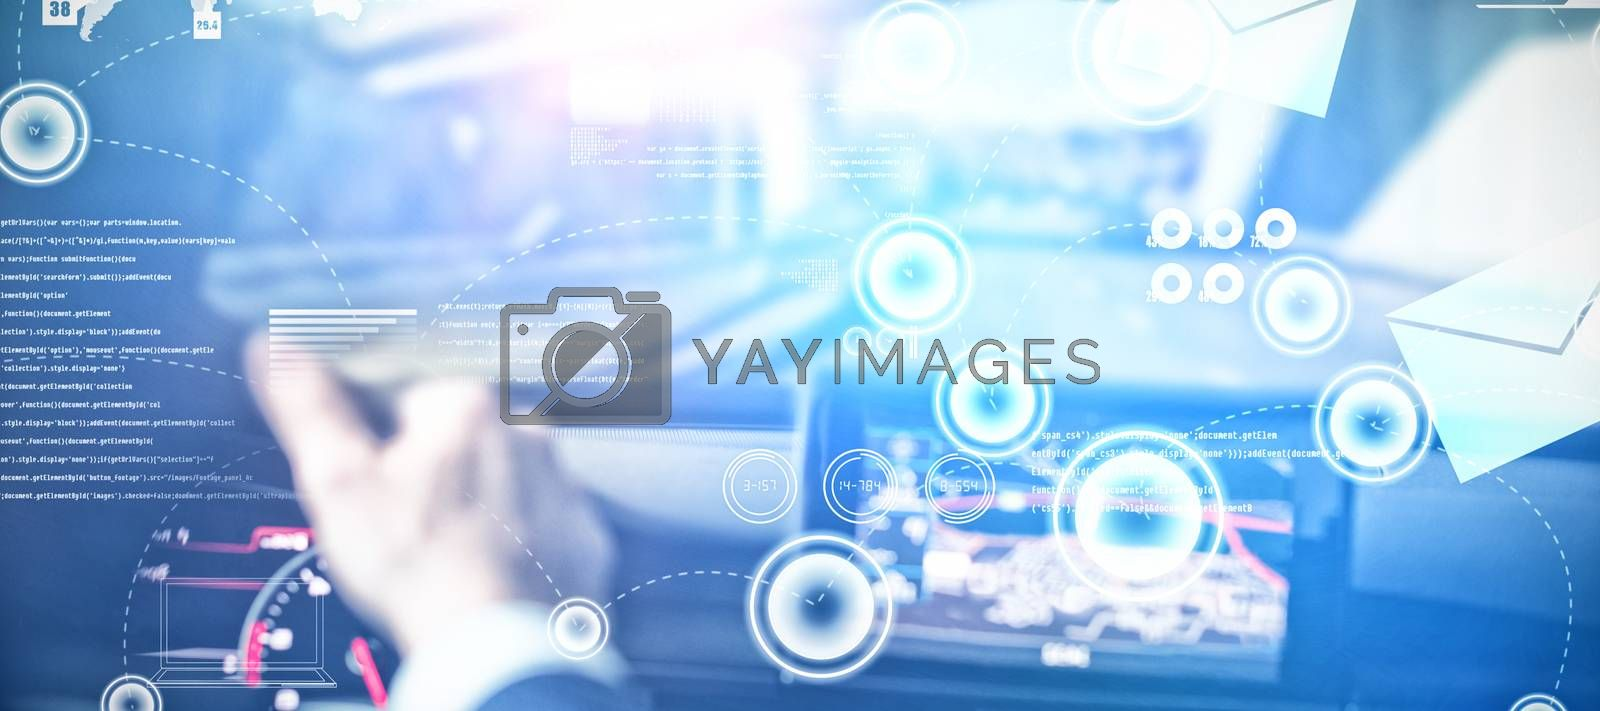 Email communication background against man driving car and looking into rear view